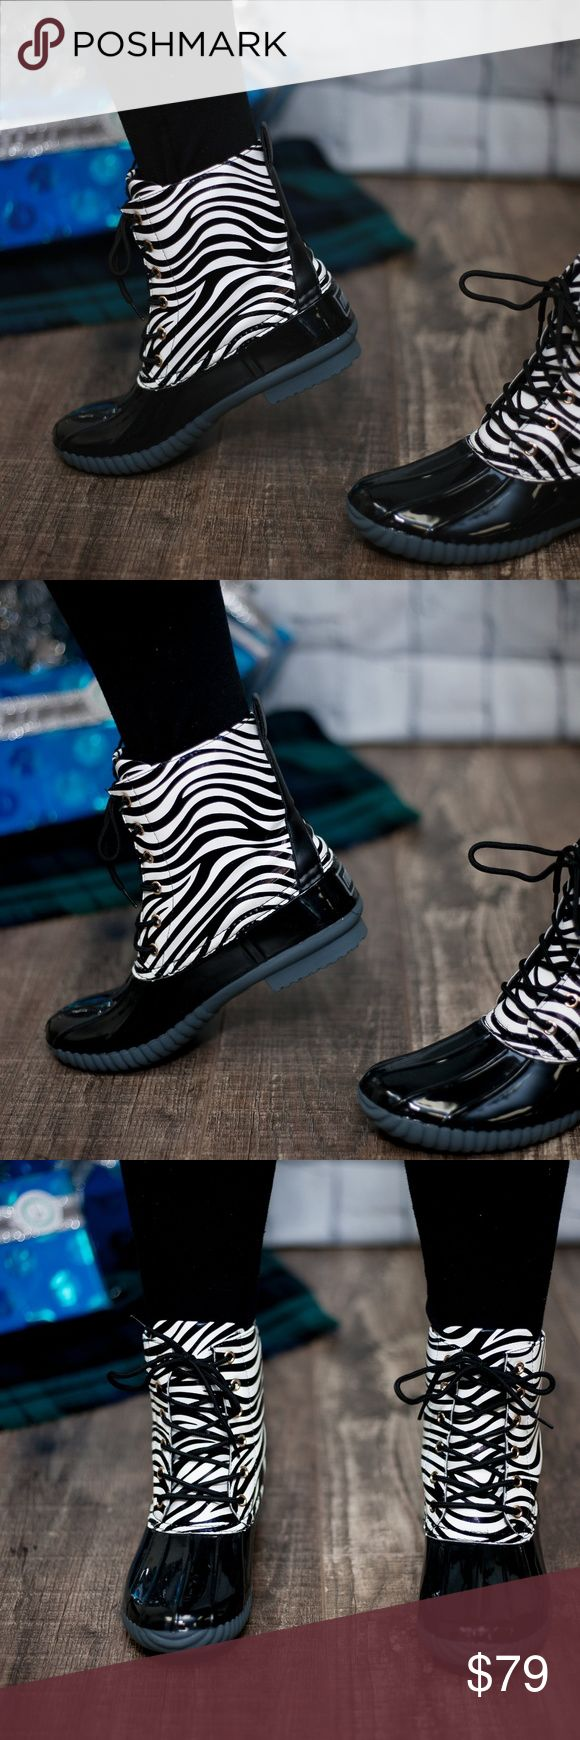 Zebra Print Duck Boots This listing is for zebra. These are selling like crazy!! $79 each or $130 for 2 pairs. Select lining in each boot to keep you comfy. Stitched synthetic rubber sole for durability and grip  Price FIRM unless bundled. Kyoot Klothing Shoes Winter & Rain Boots